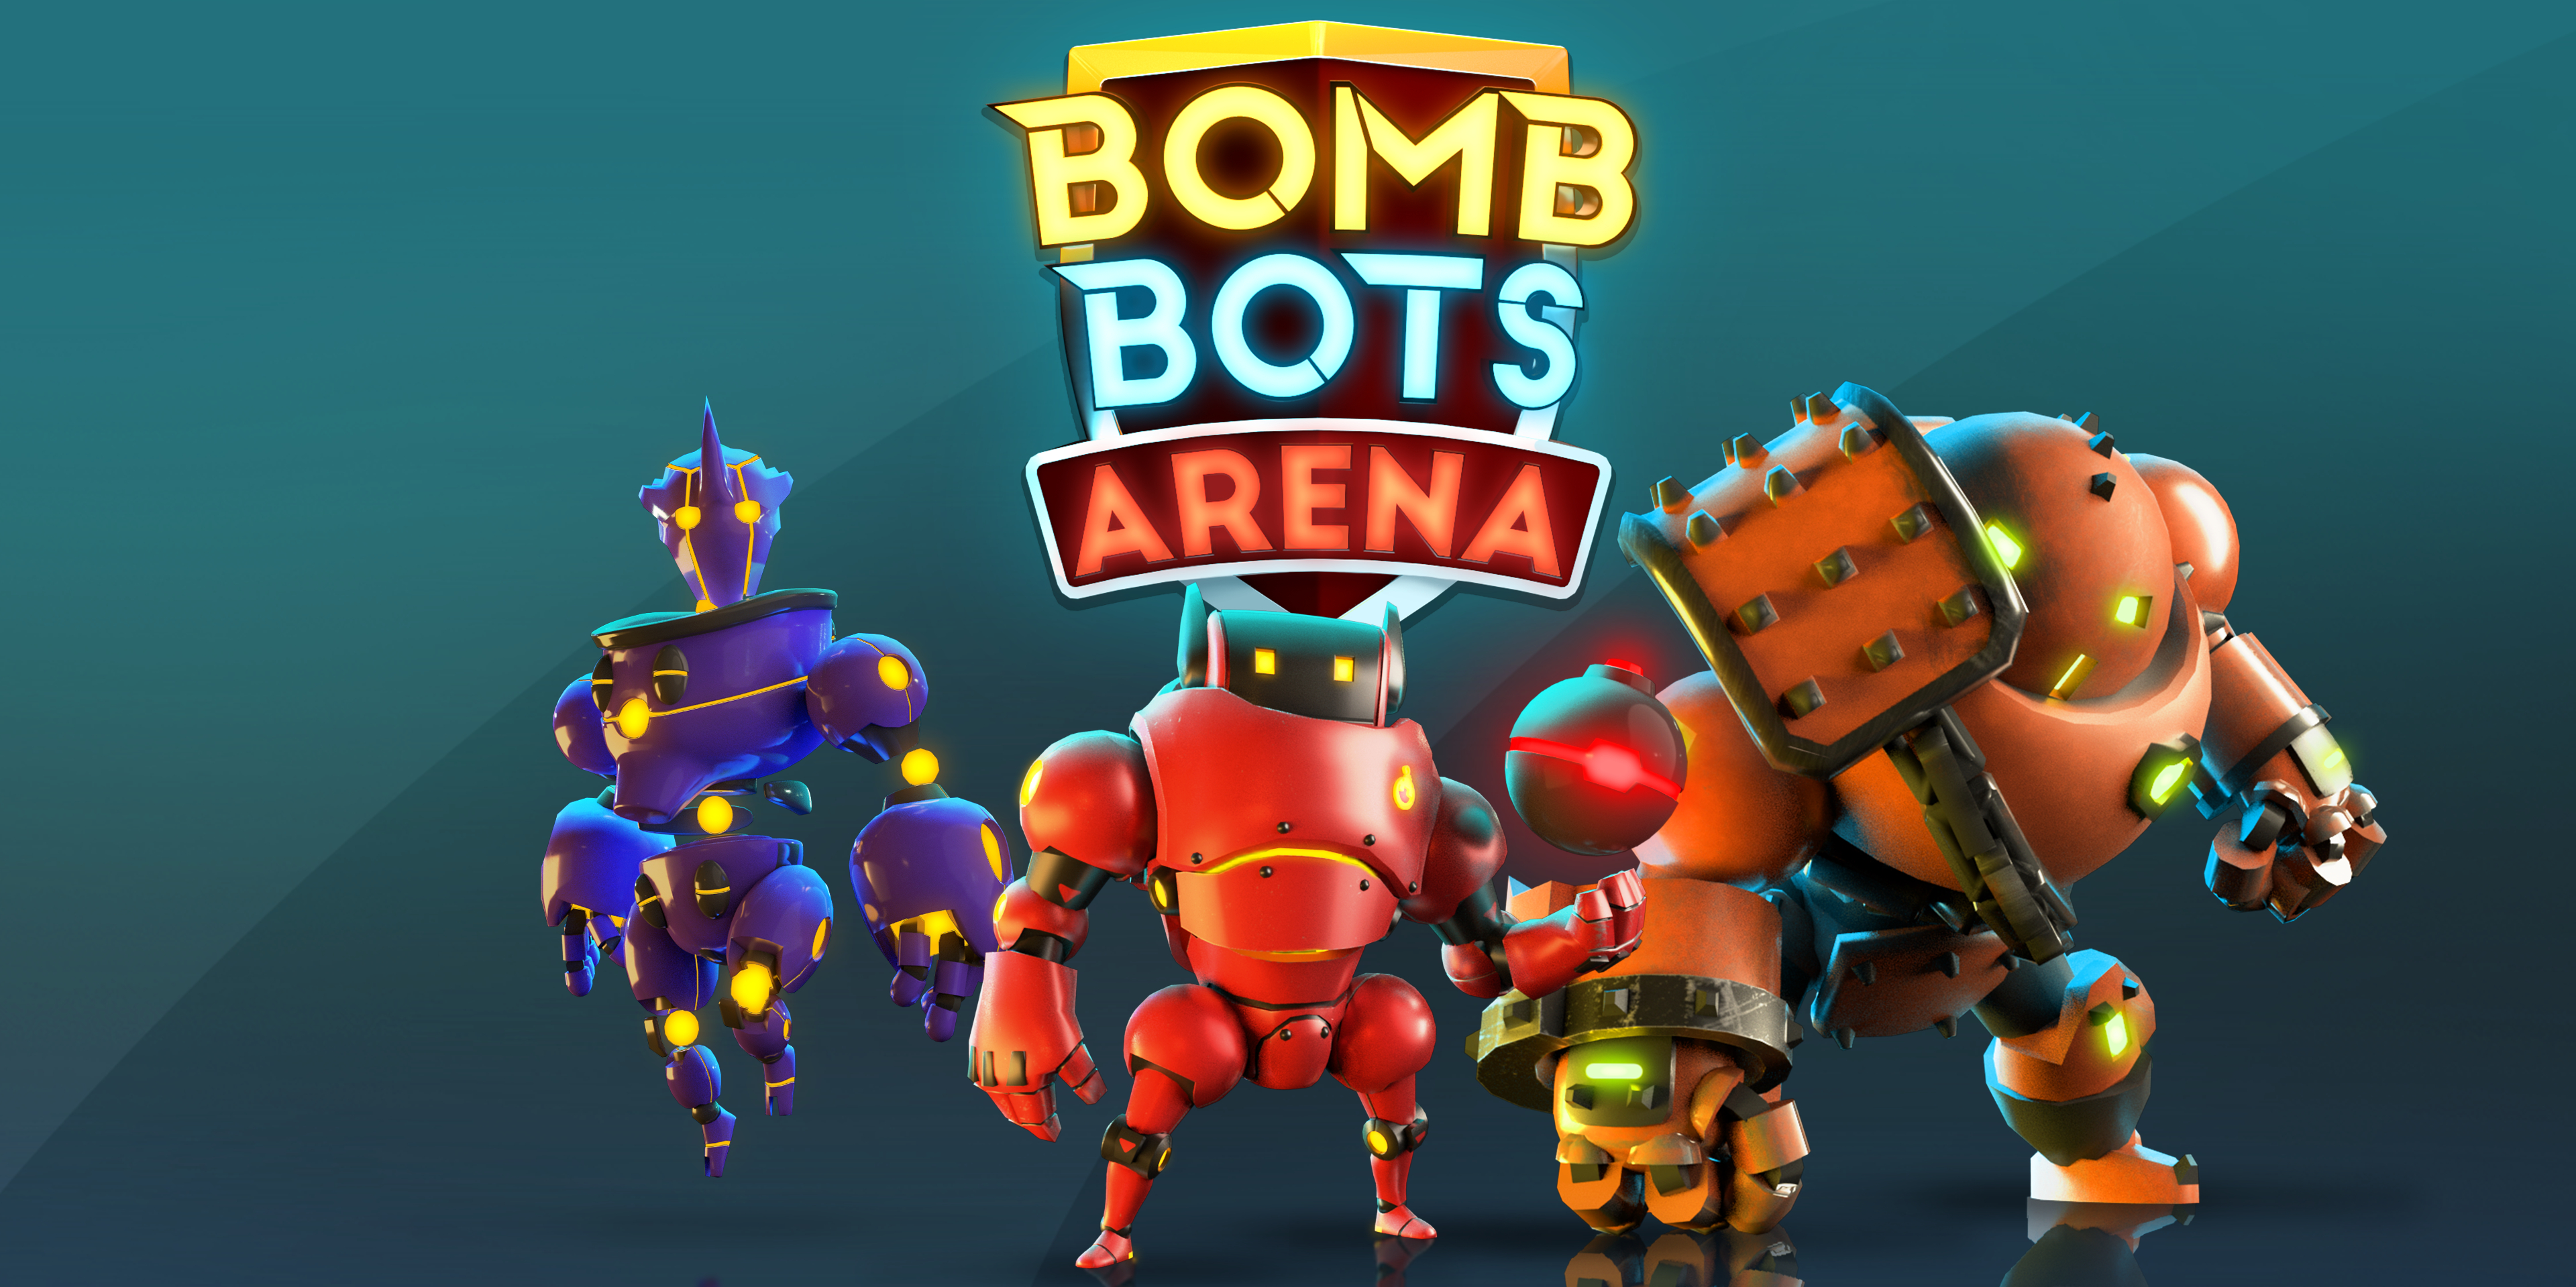 Bomb Bots Arena is an intense, mobile-friendly spin on Bomberman that's heading to iOS and Android in June